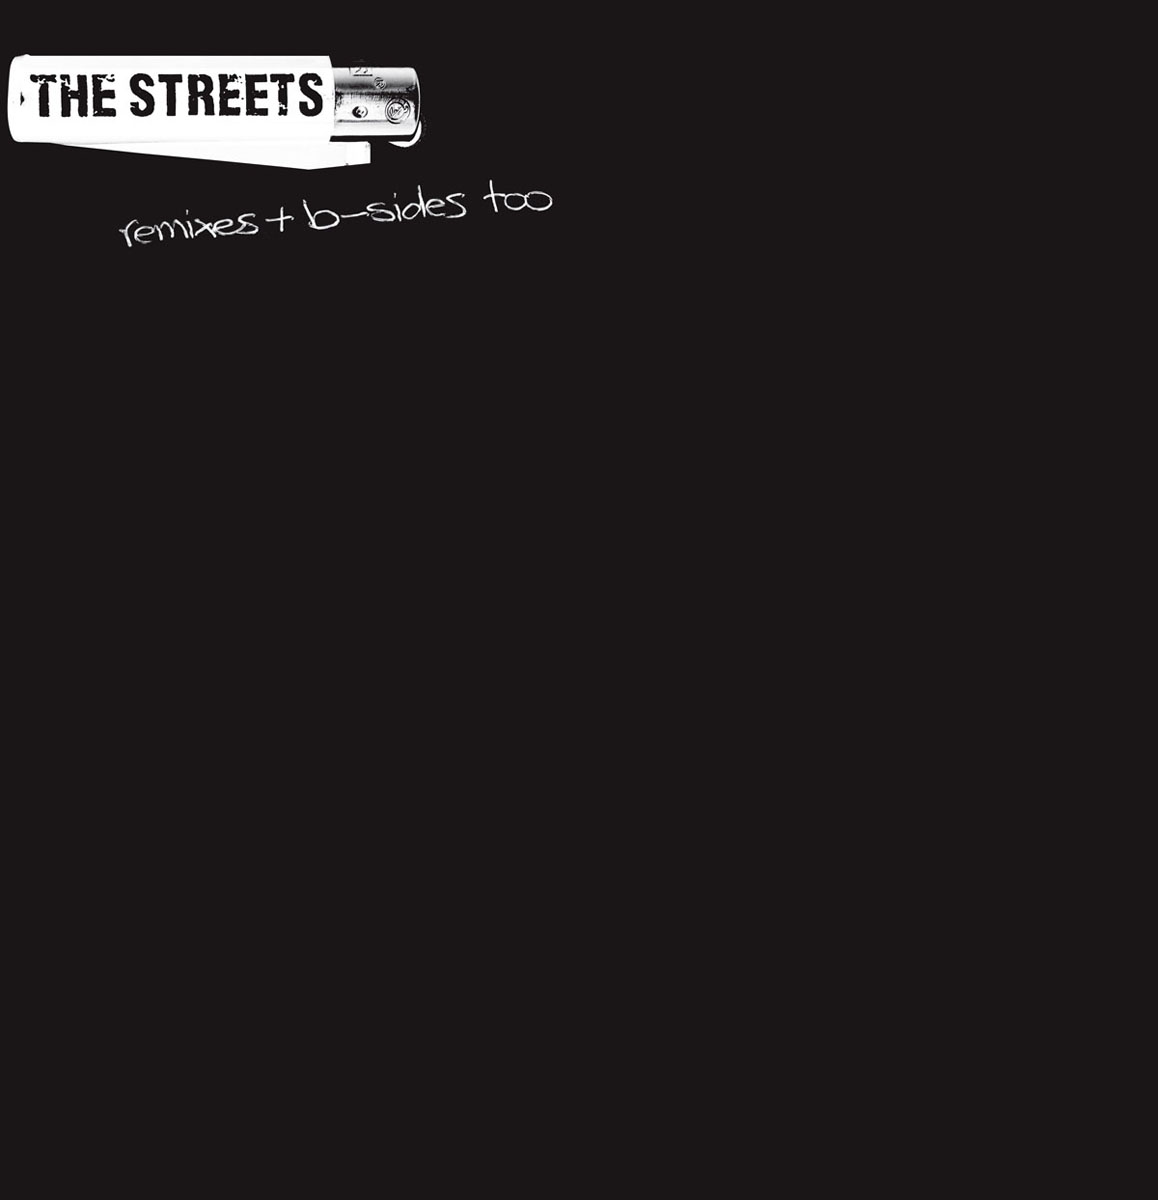 The Streets The Streets. Remixes & B Sides Too (2 LP) living in the streets 2 2 lp